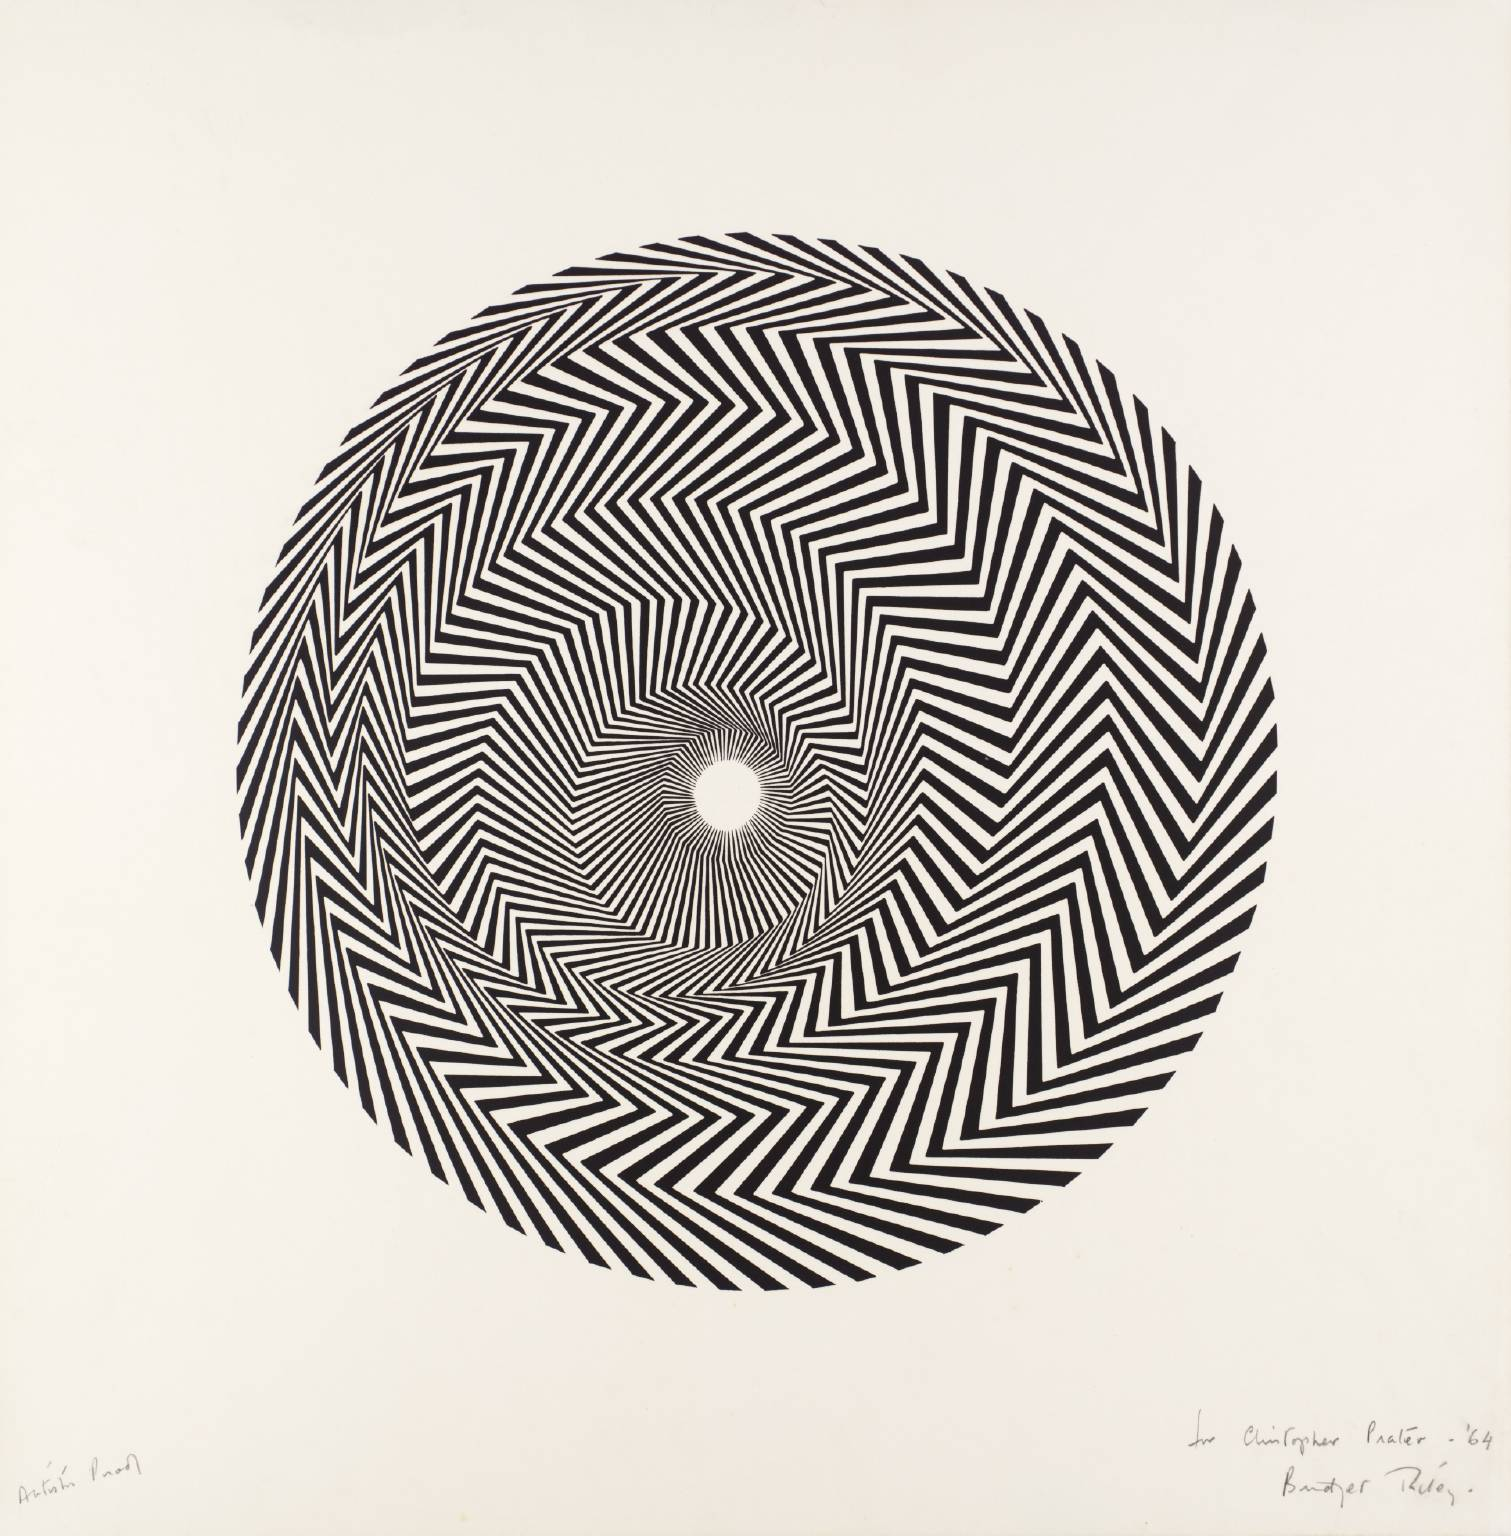 The Work of Bridget Riley: Juxtapoz-BridgetRiley14.jpg